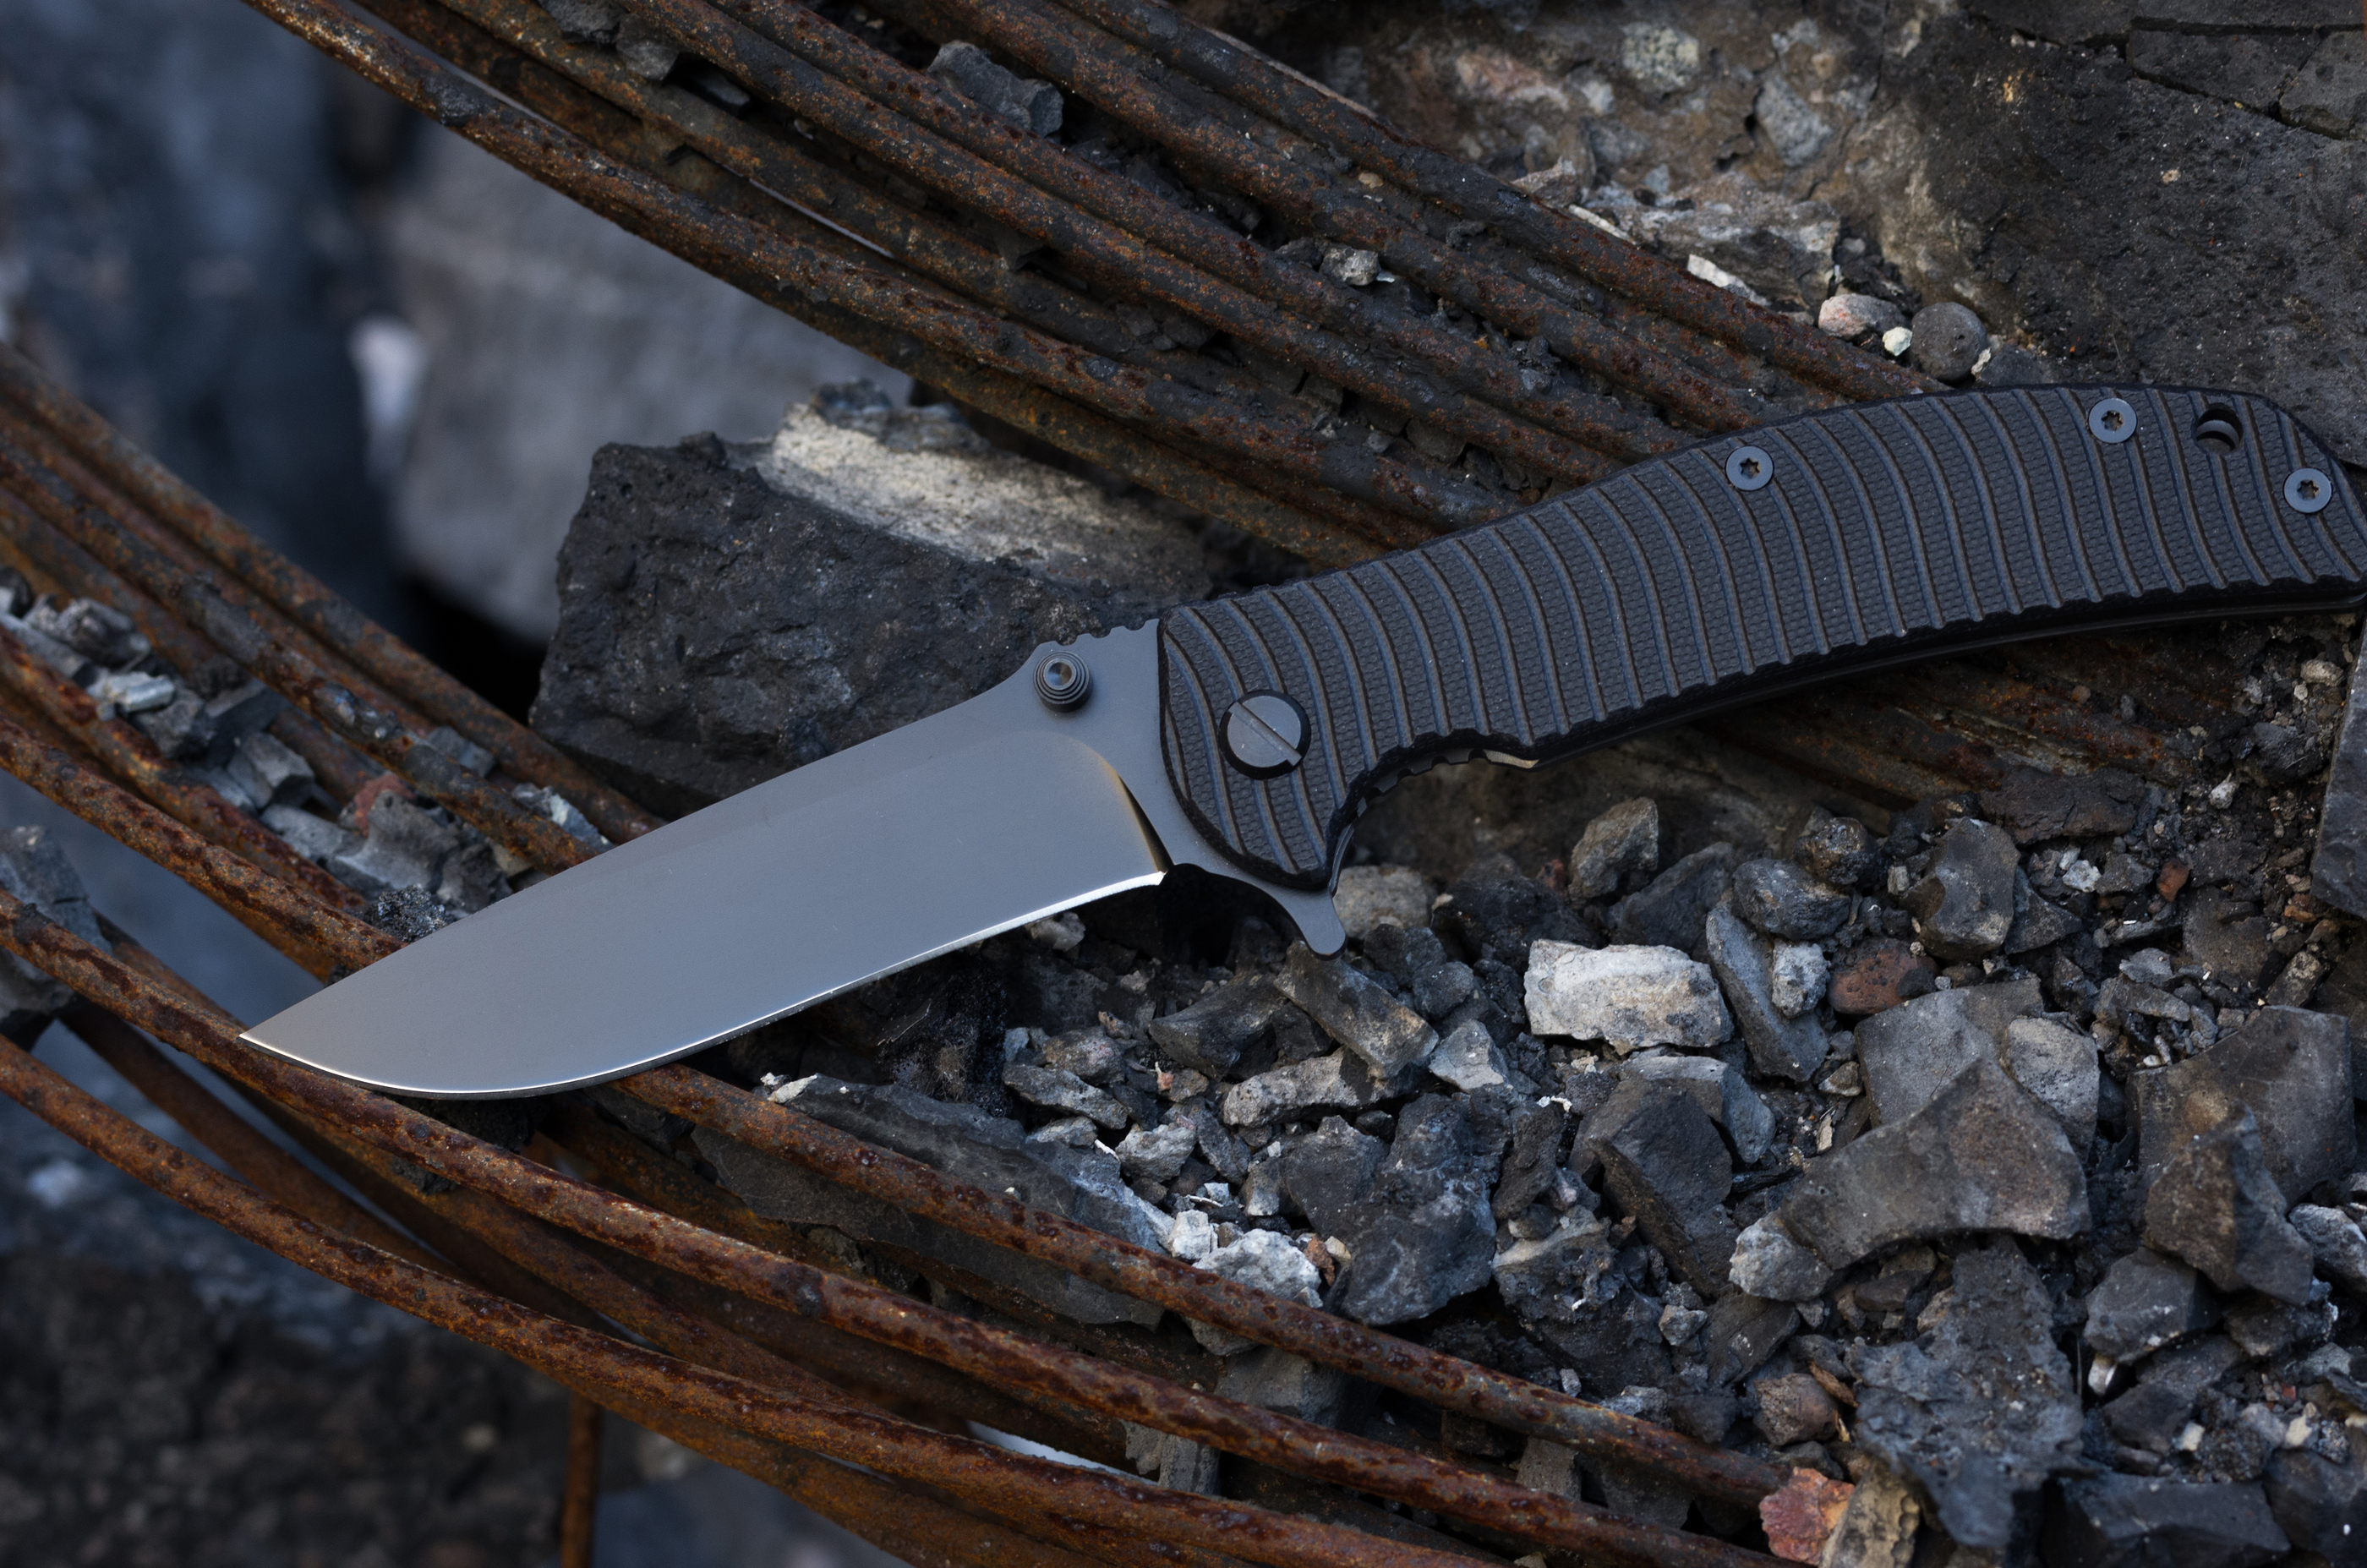 bigstock-folding-knife-the-knife-is-bl-245031490.jpg